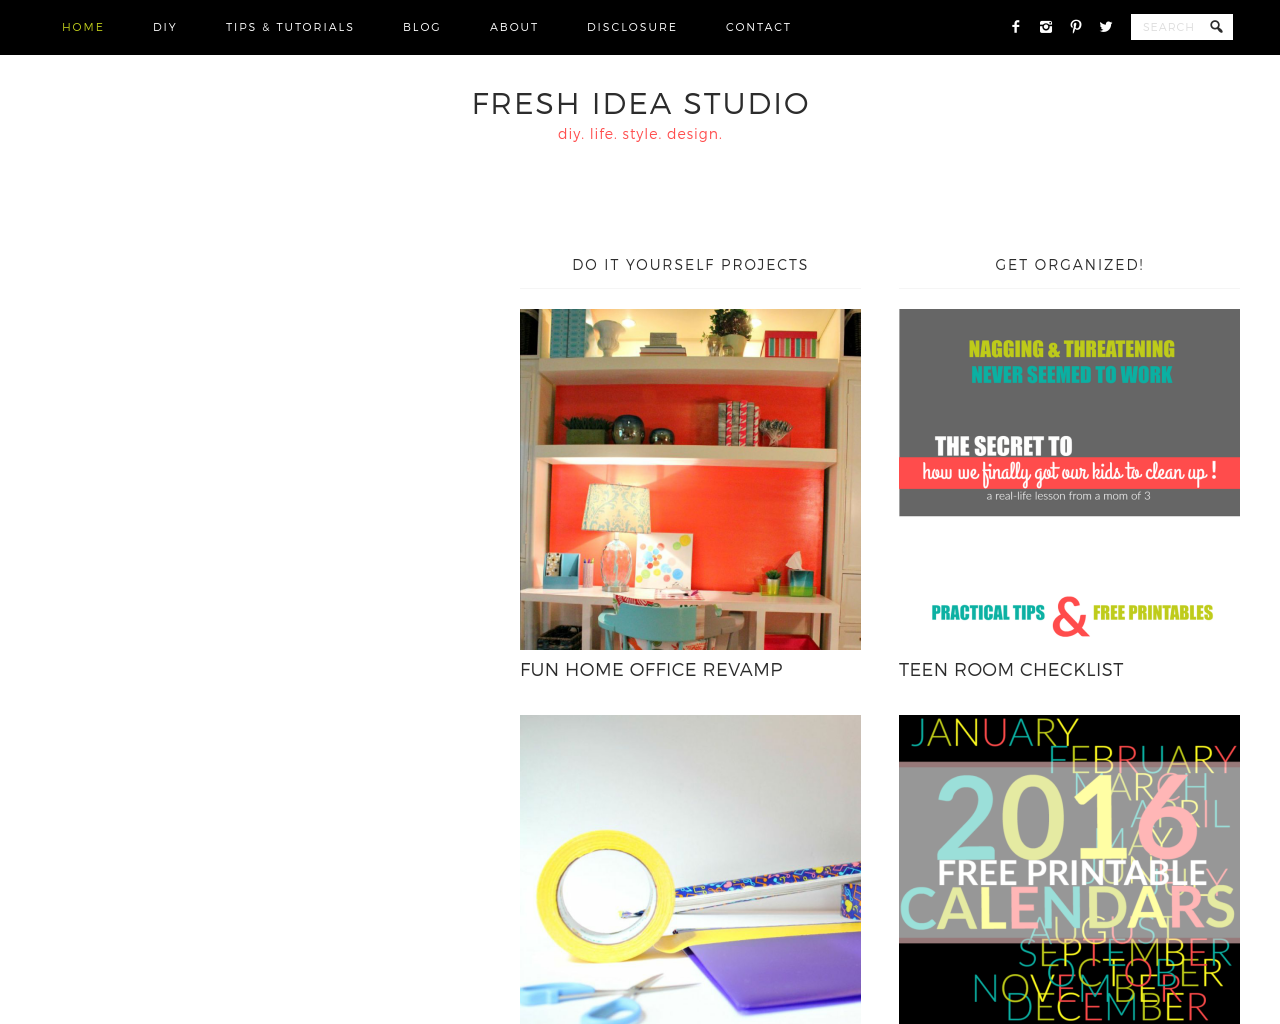 Fresh-Idea-Studio-Advertising-Reviews-Pricing